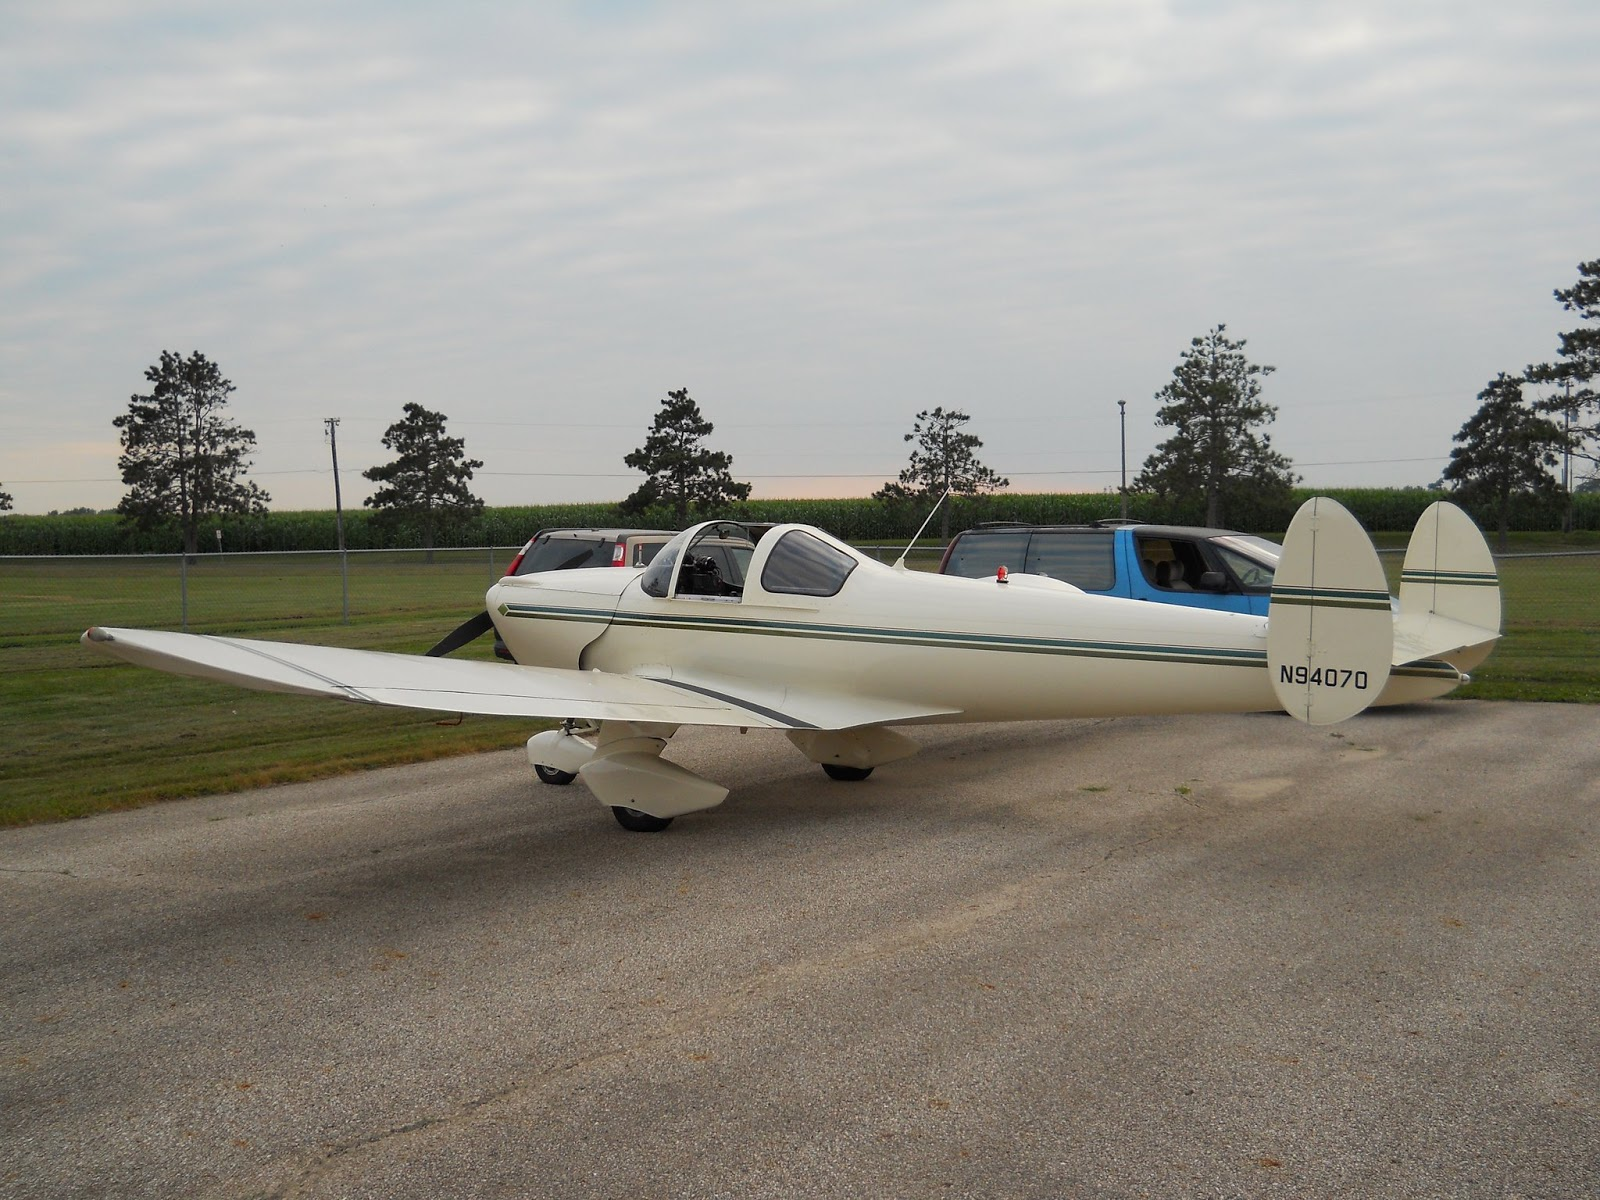 Kathryn's Report: Loss of Engine Power (Total): Ercoupe 415